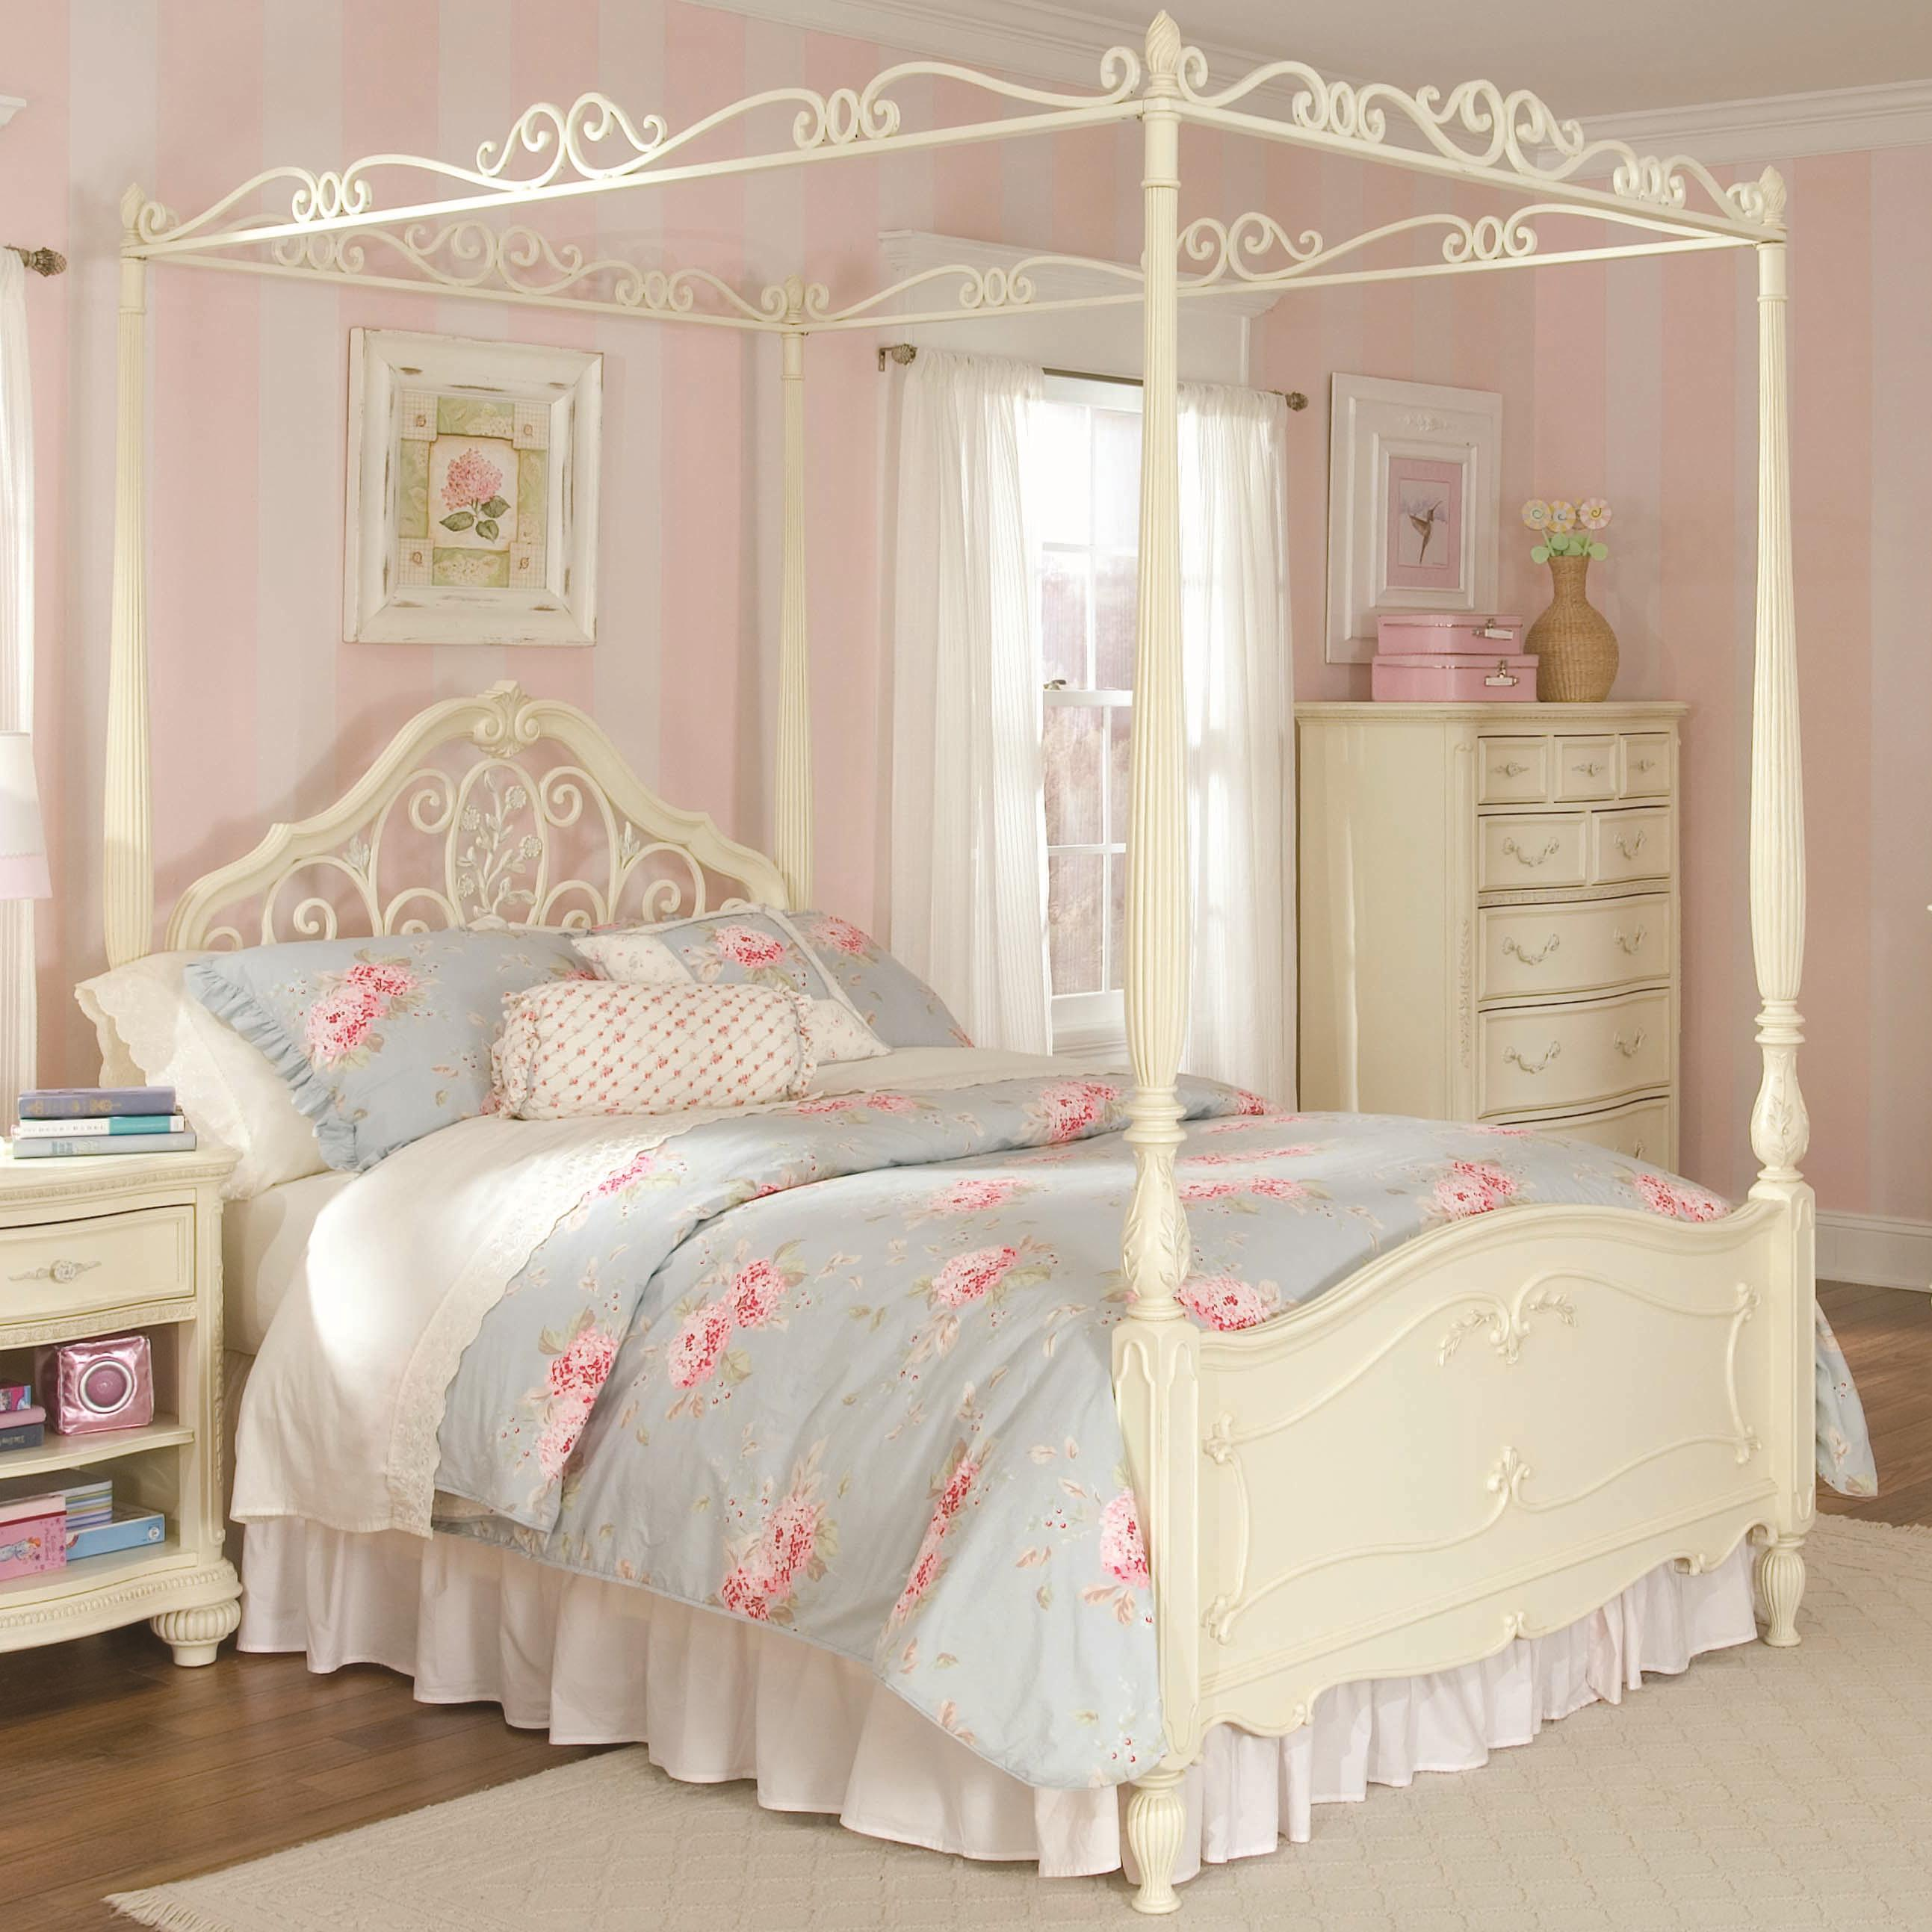 Delightful Lea Industries Jessica McClintock Romance Full Size Metal U0026 Wood Canopy Bed  With Scroll Detailing   AHFA   Canopy Bed Dealer Locator